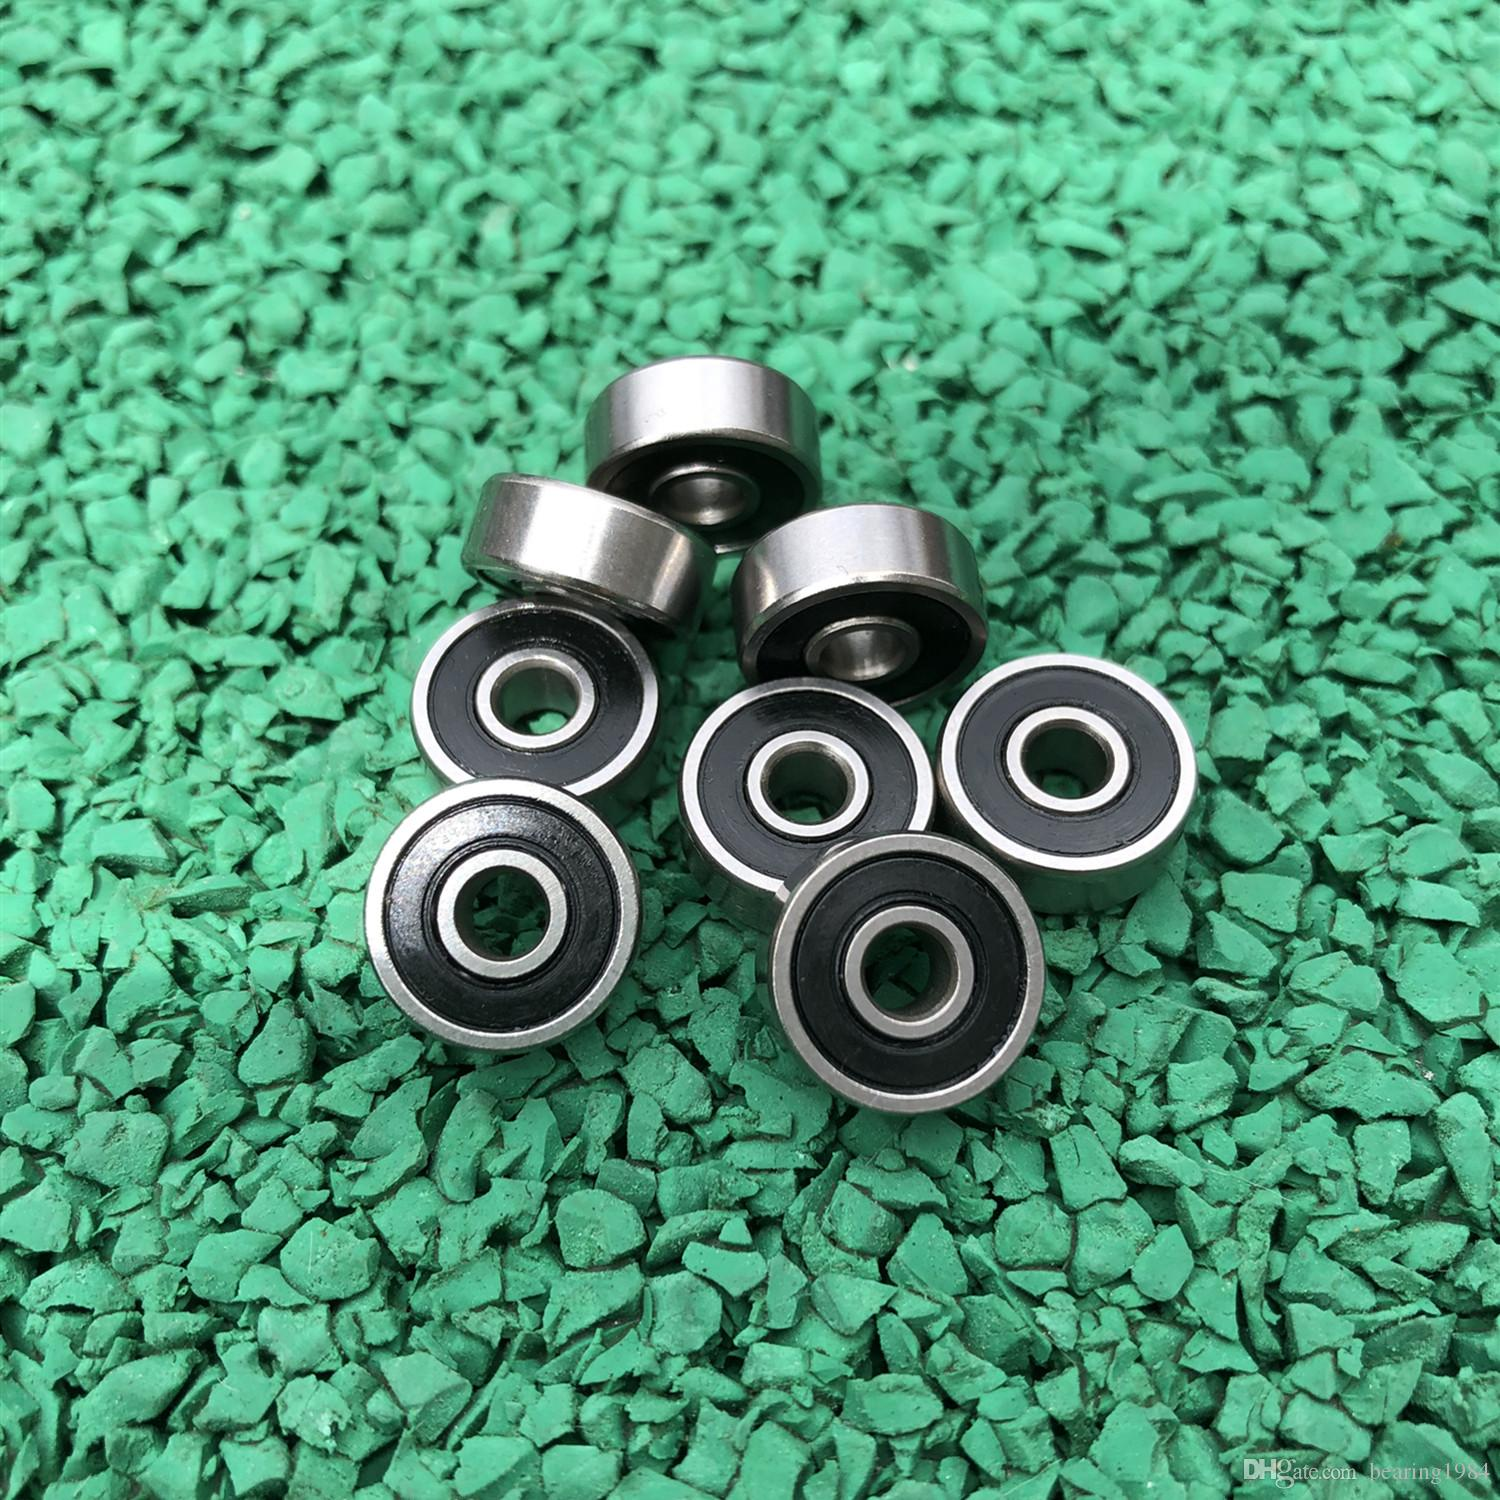 625-2RS 5x16x5 5mm//16mm//5mm 625RS Miniature Ball Sealed Radial Ball Bearings